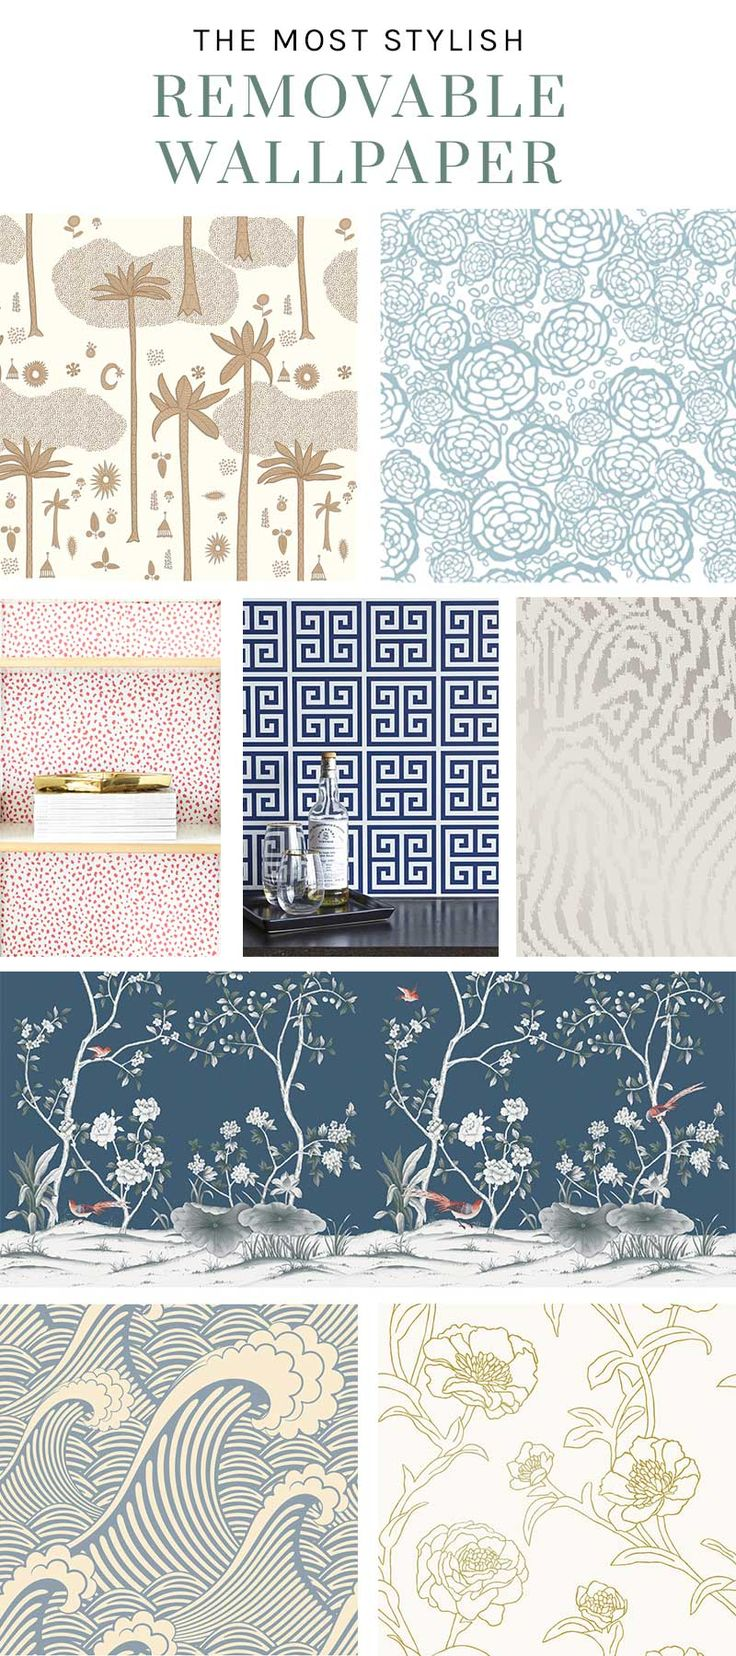 Stylish removable wallpaper designs on Thou Swell @thouswellblog